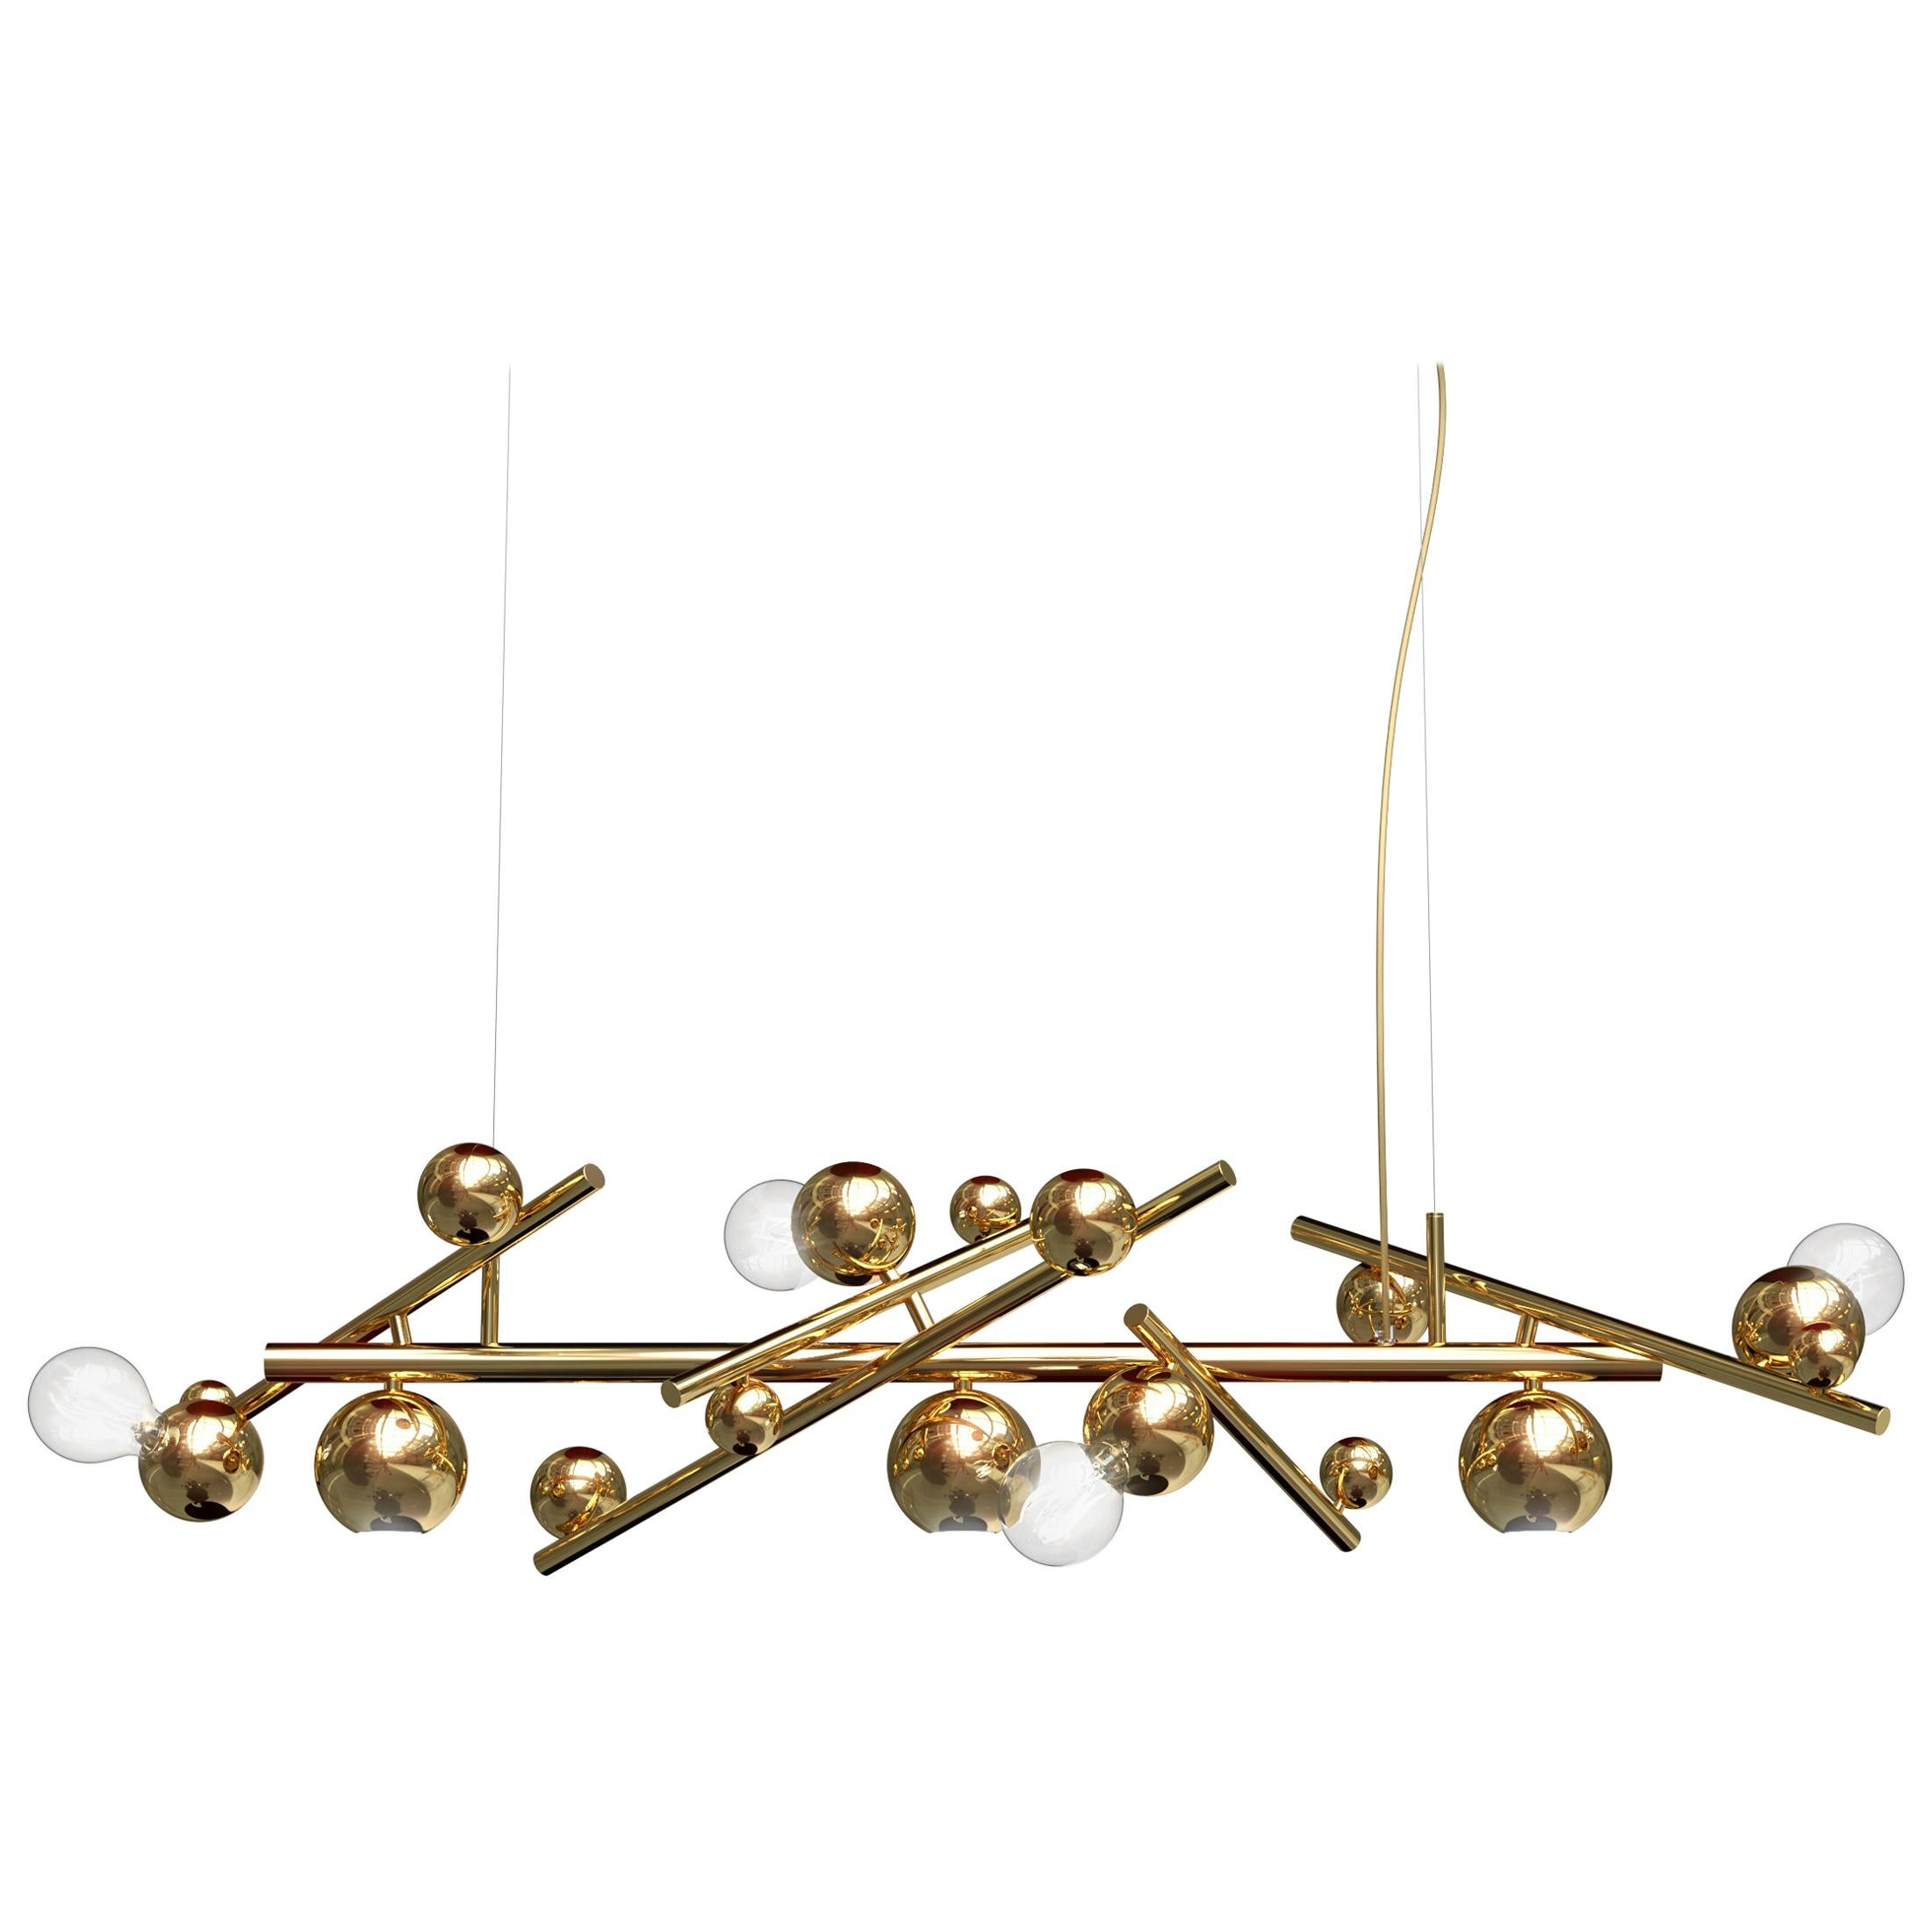 Modern Pendant in a Brass Finish, Galaxy Collection, by Brand Van Egmond